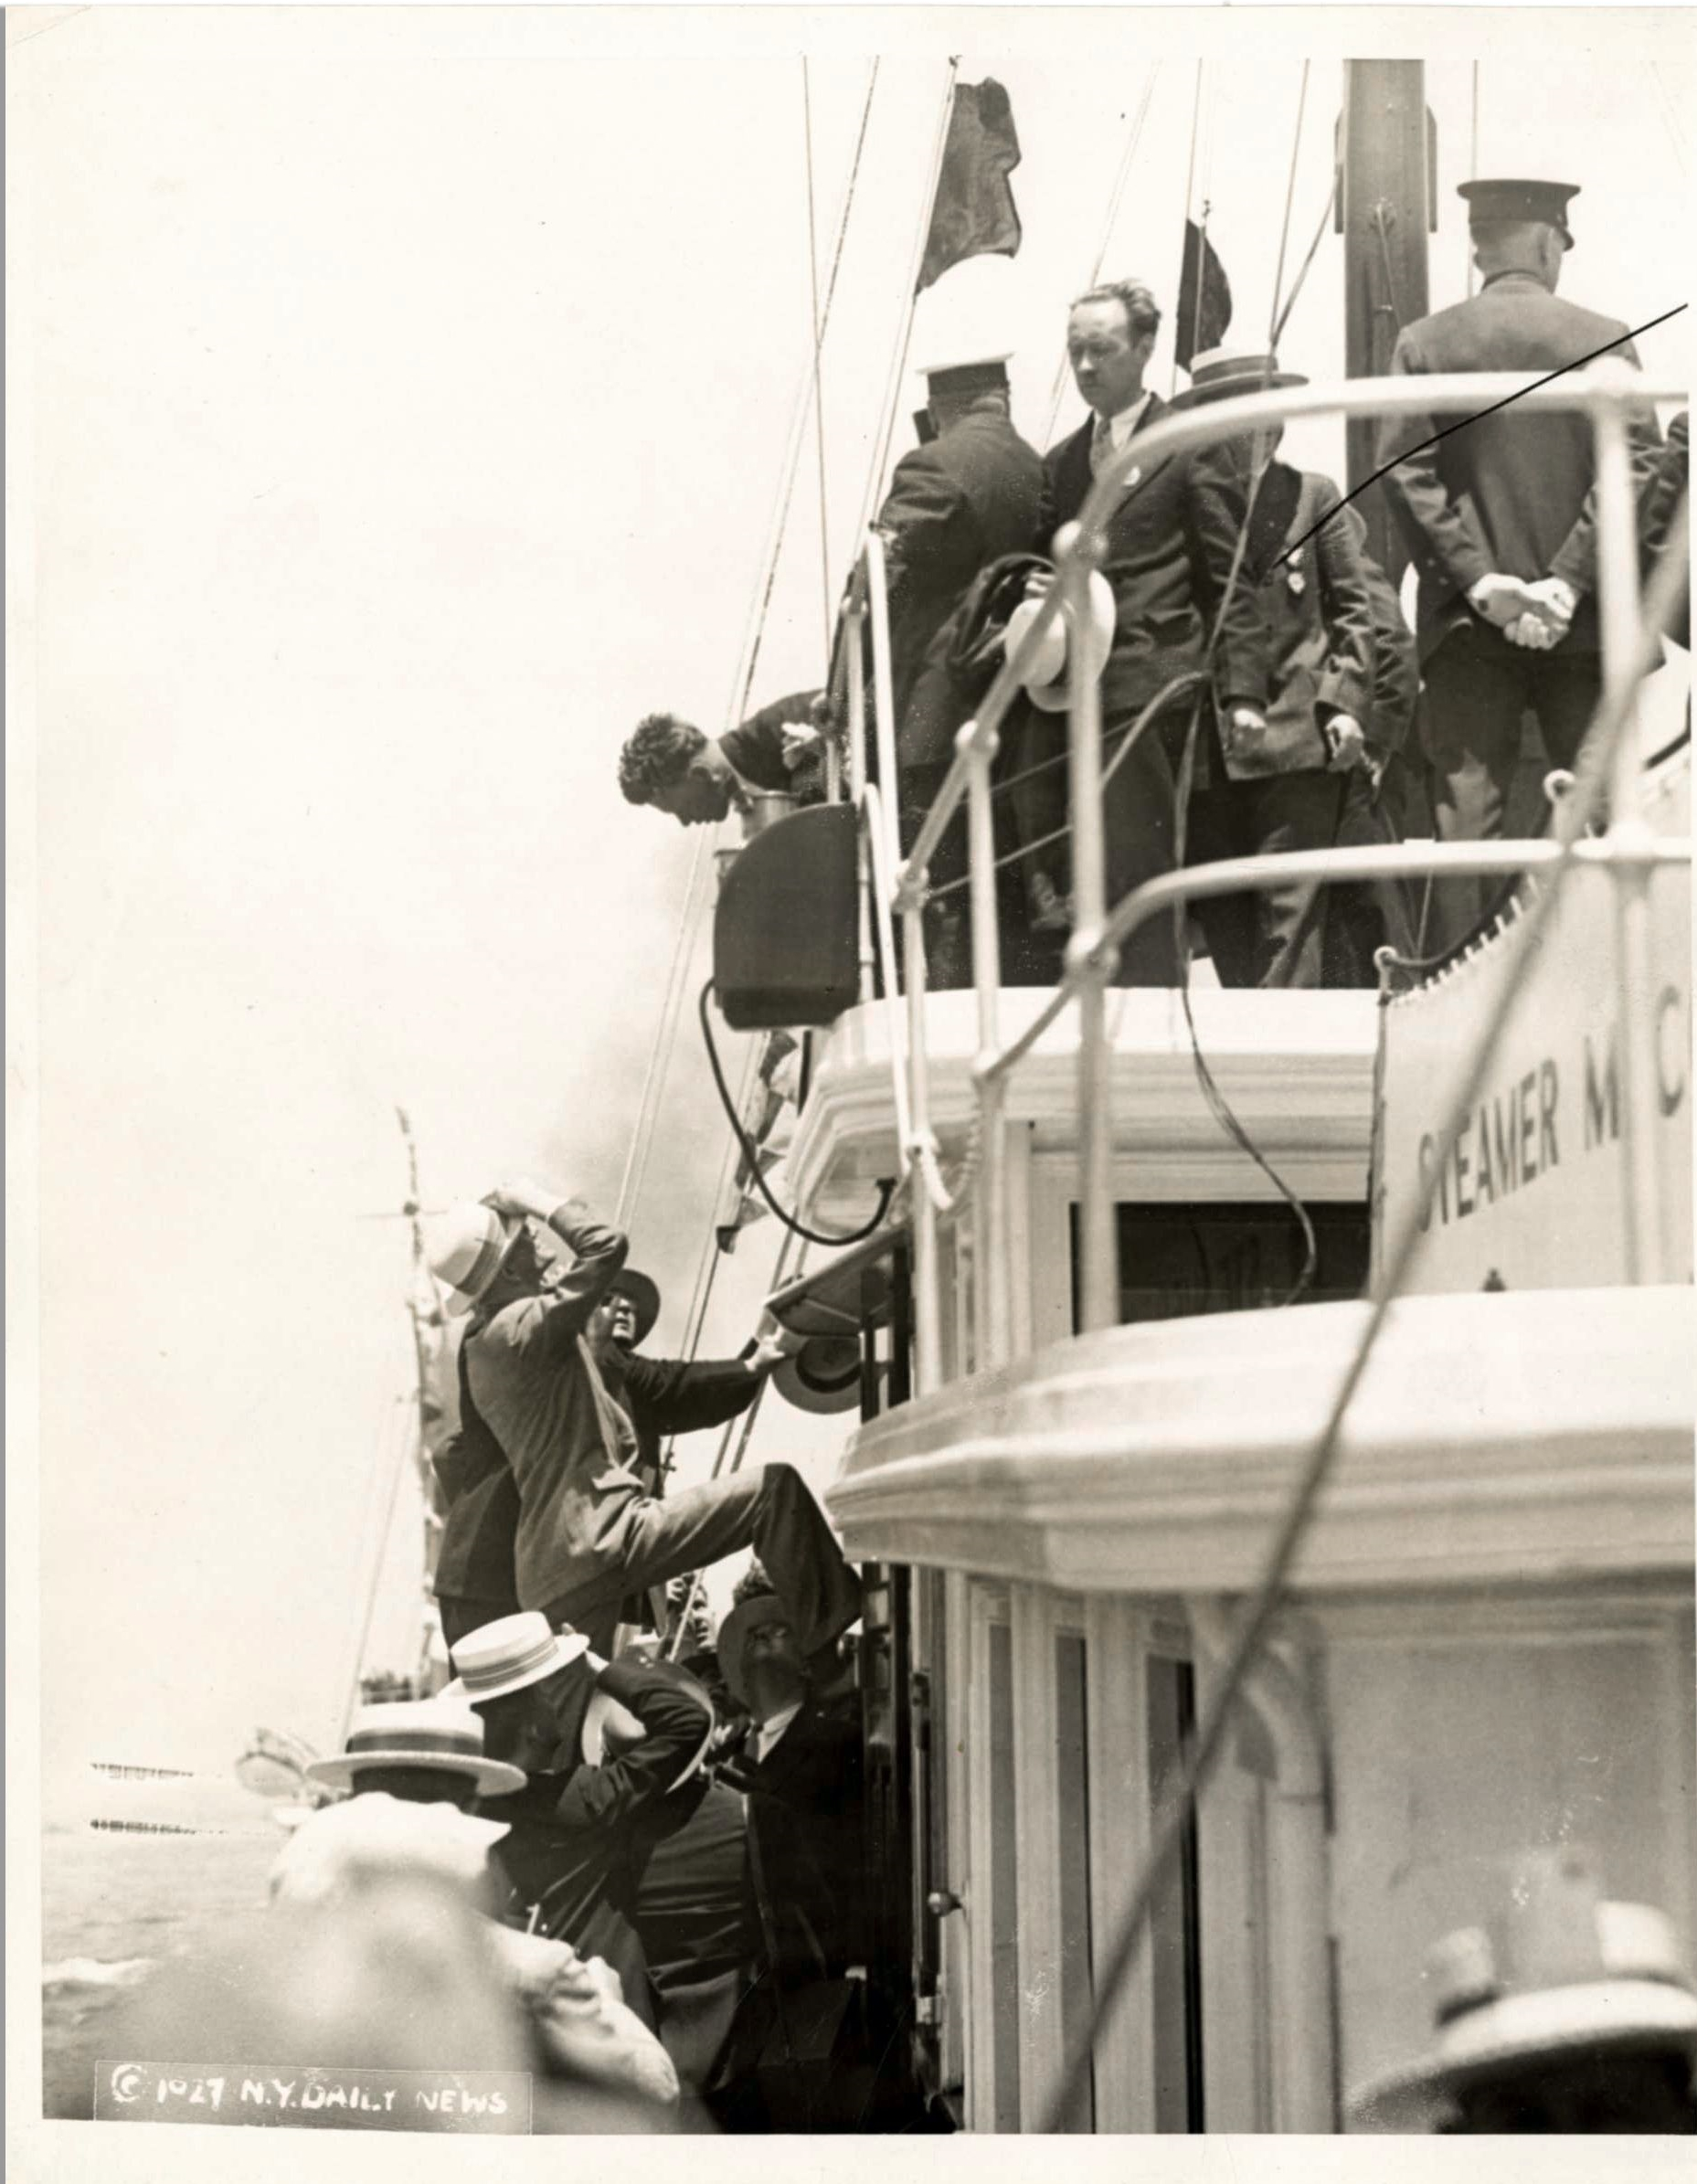 Charles Lindbergh arrives in New York harbor following a seaplane flight from Washington, D.C. on June 13, 1927.